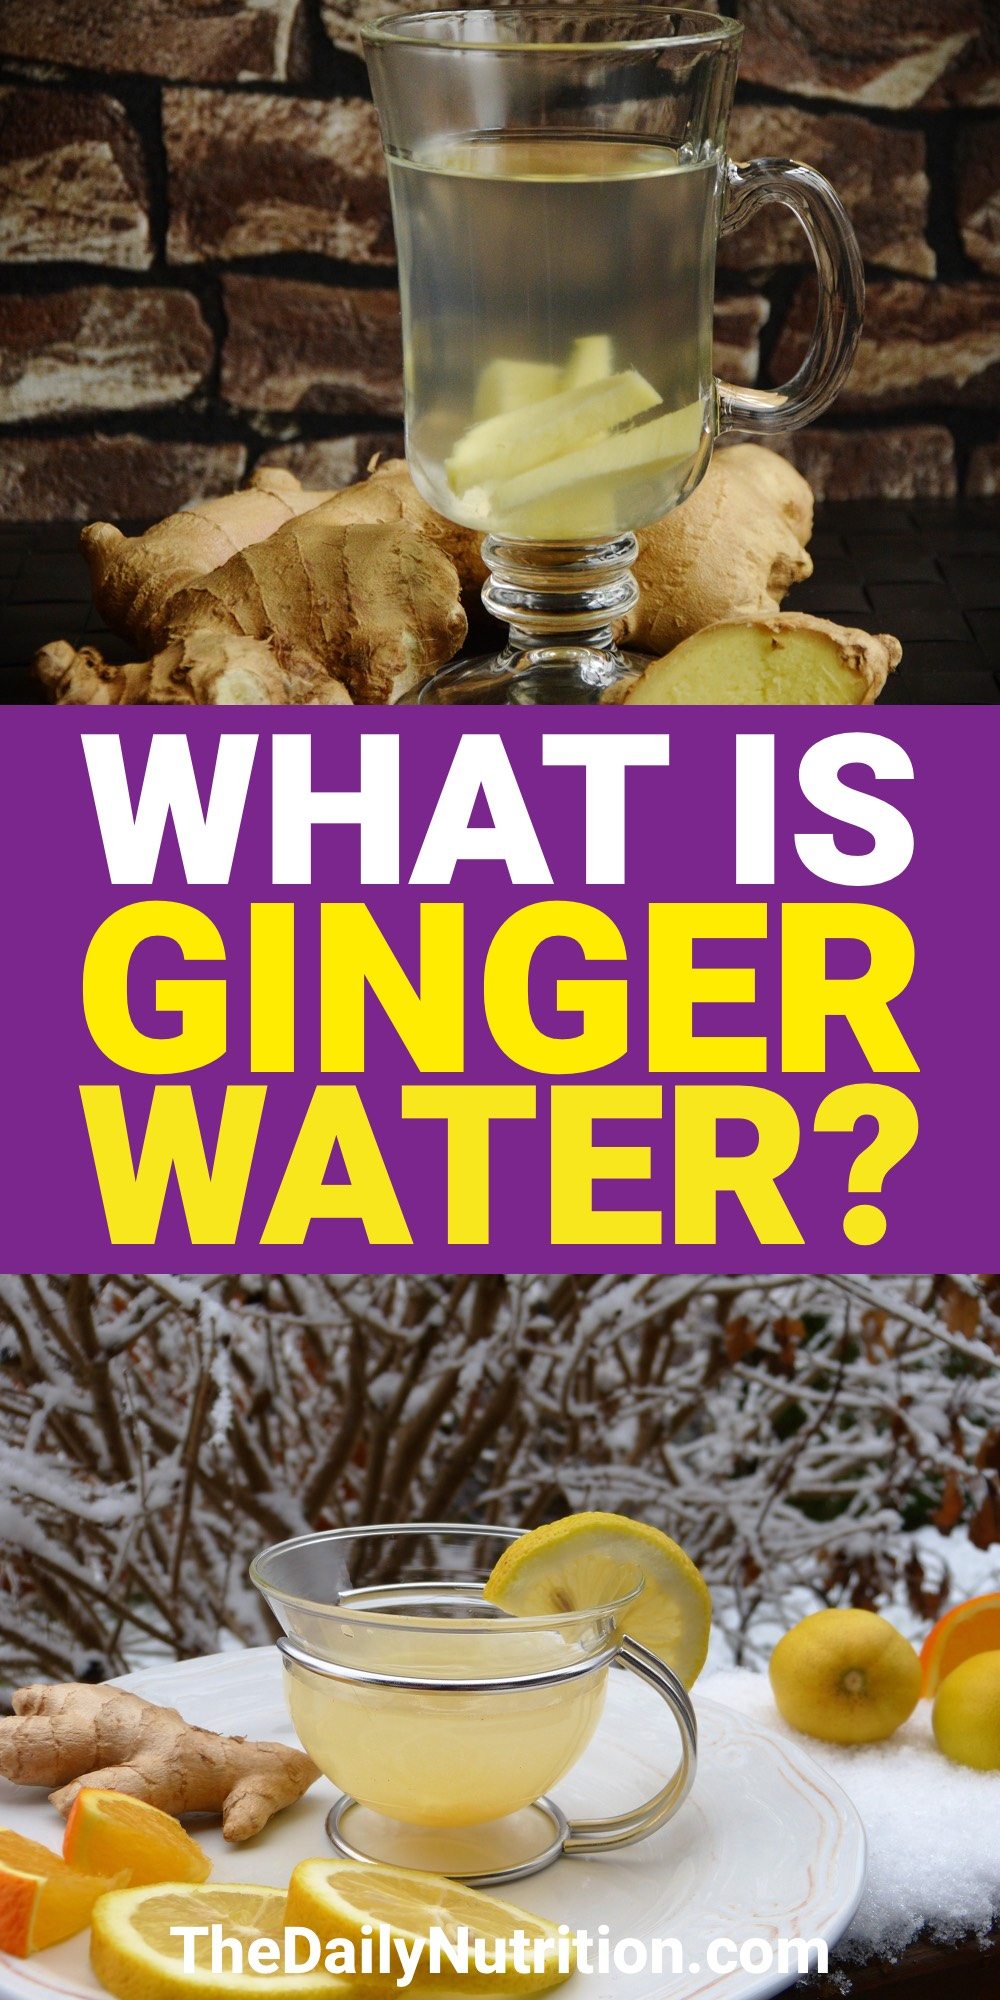 If you want a healthier body, incorporating ginger water into your diet will help. Find out the ginger water benefits here.